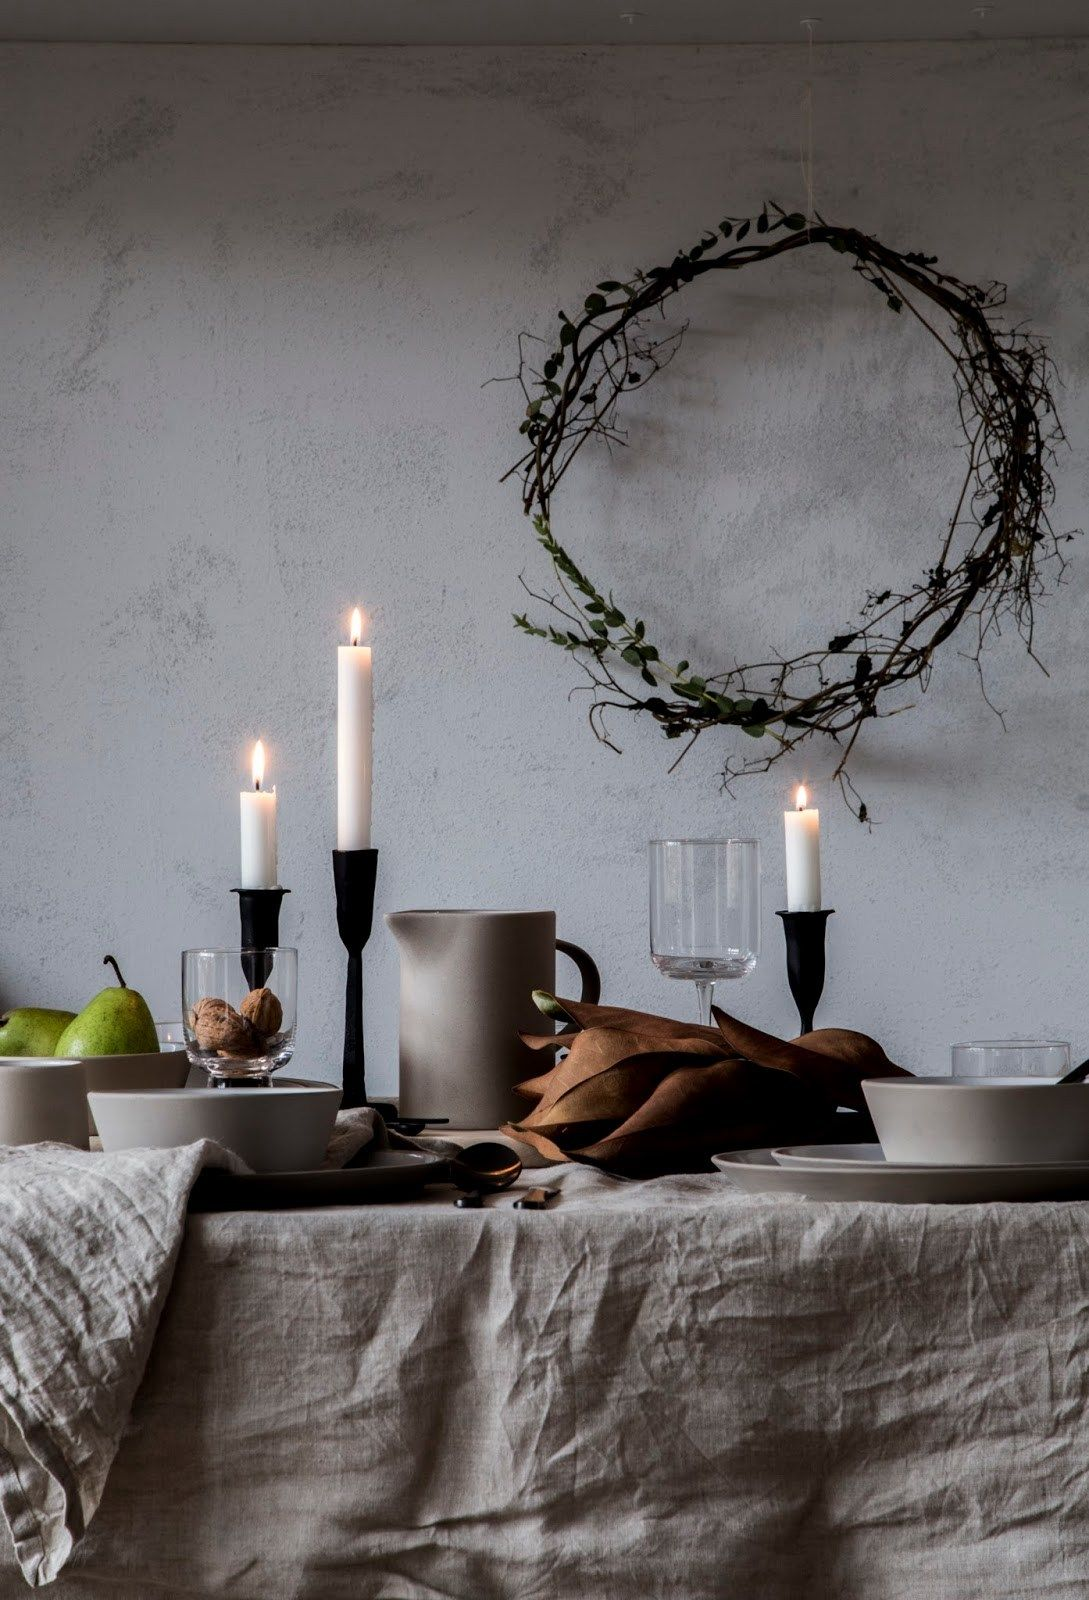 The Latest Decorating Trends for Christmas and 2018 from Scandinavia ...